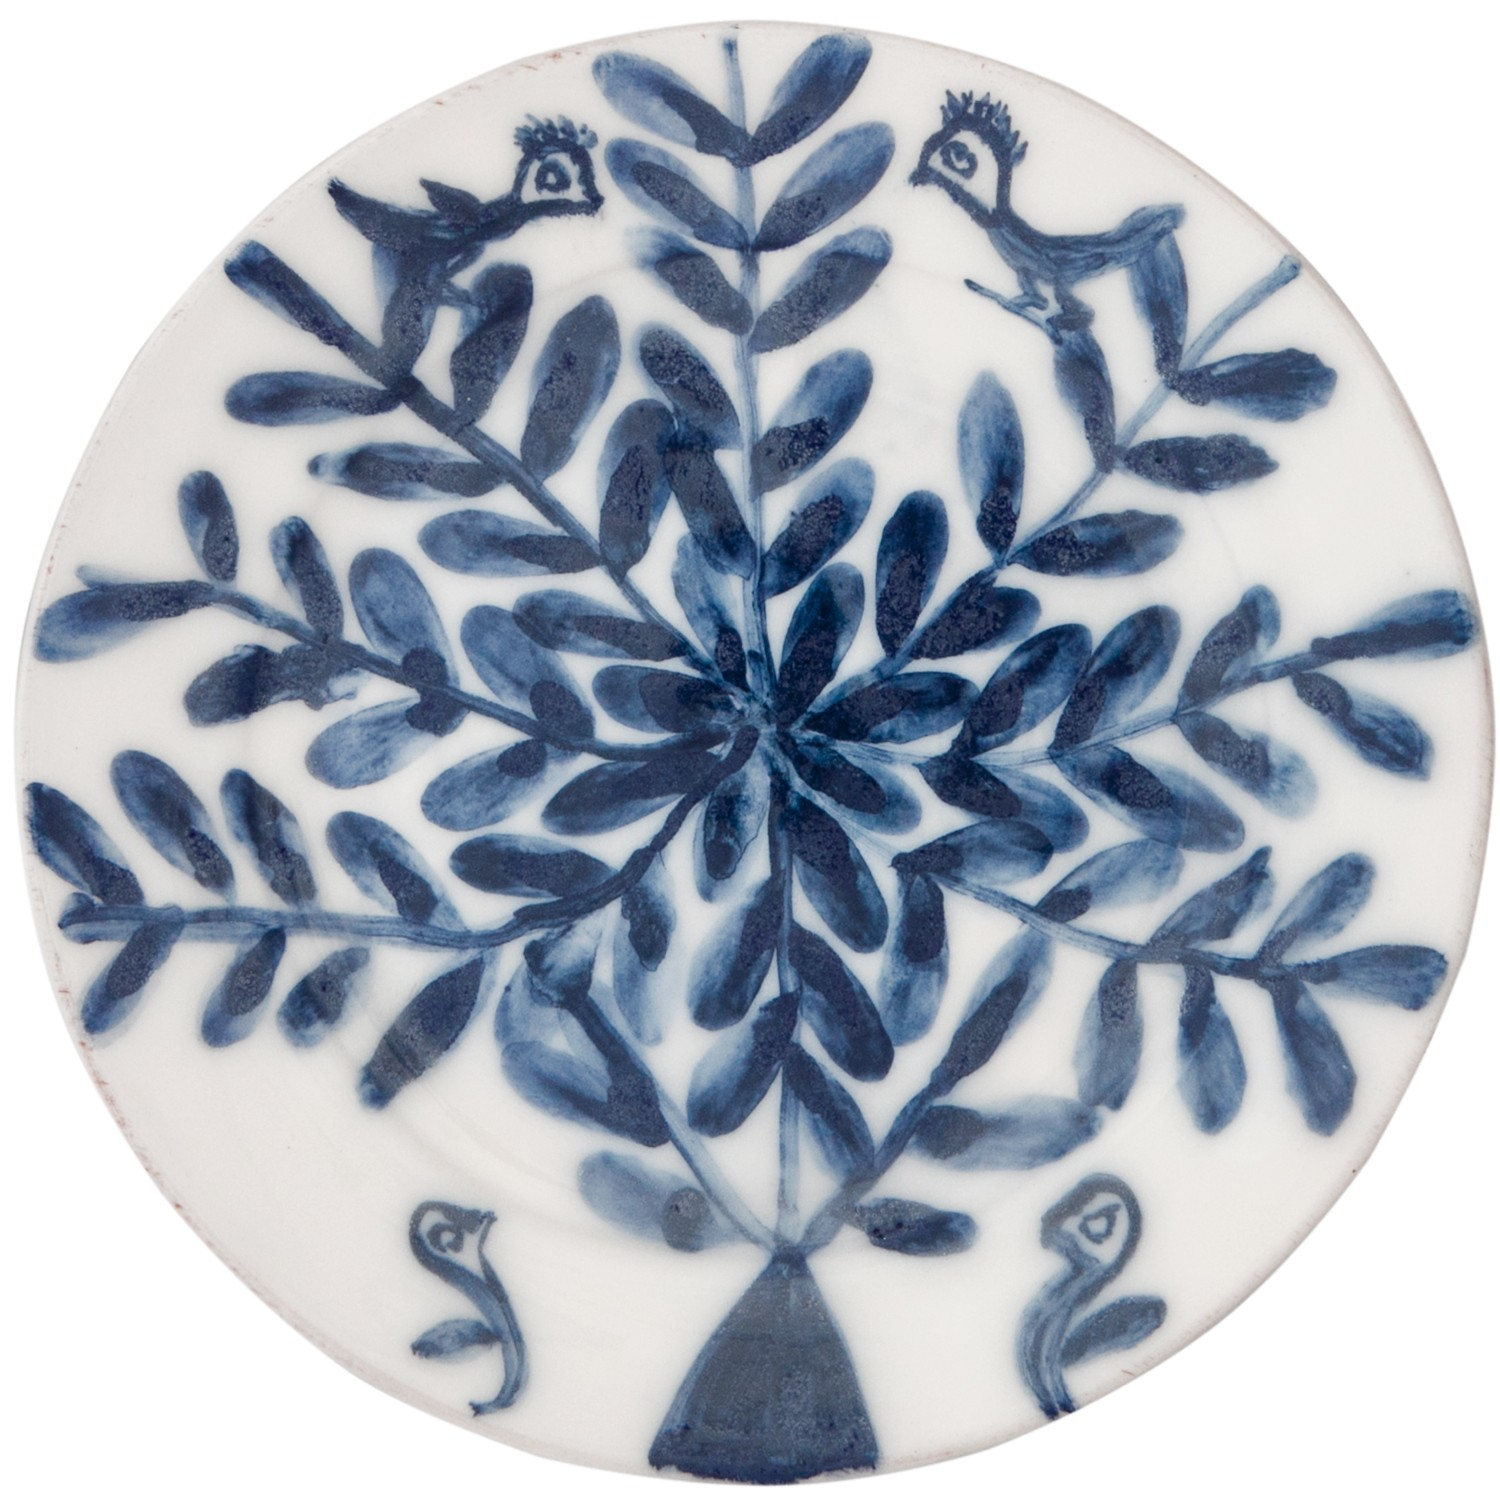 Decorative Blue and White Plates- Flower-1